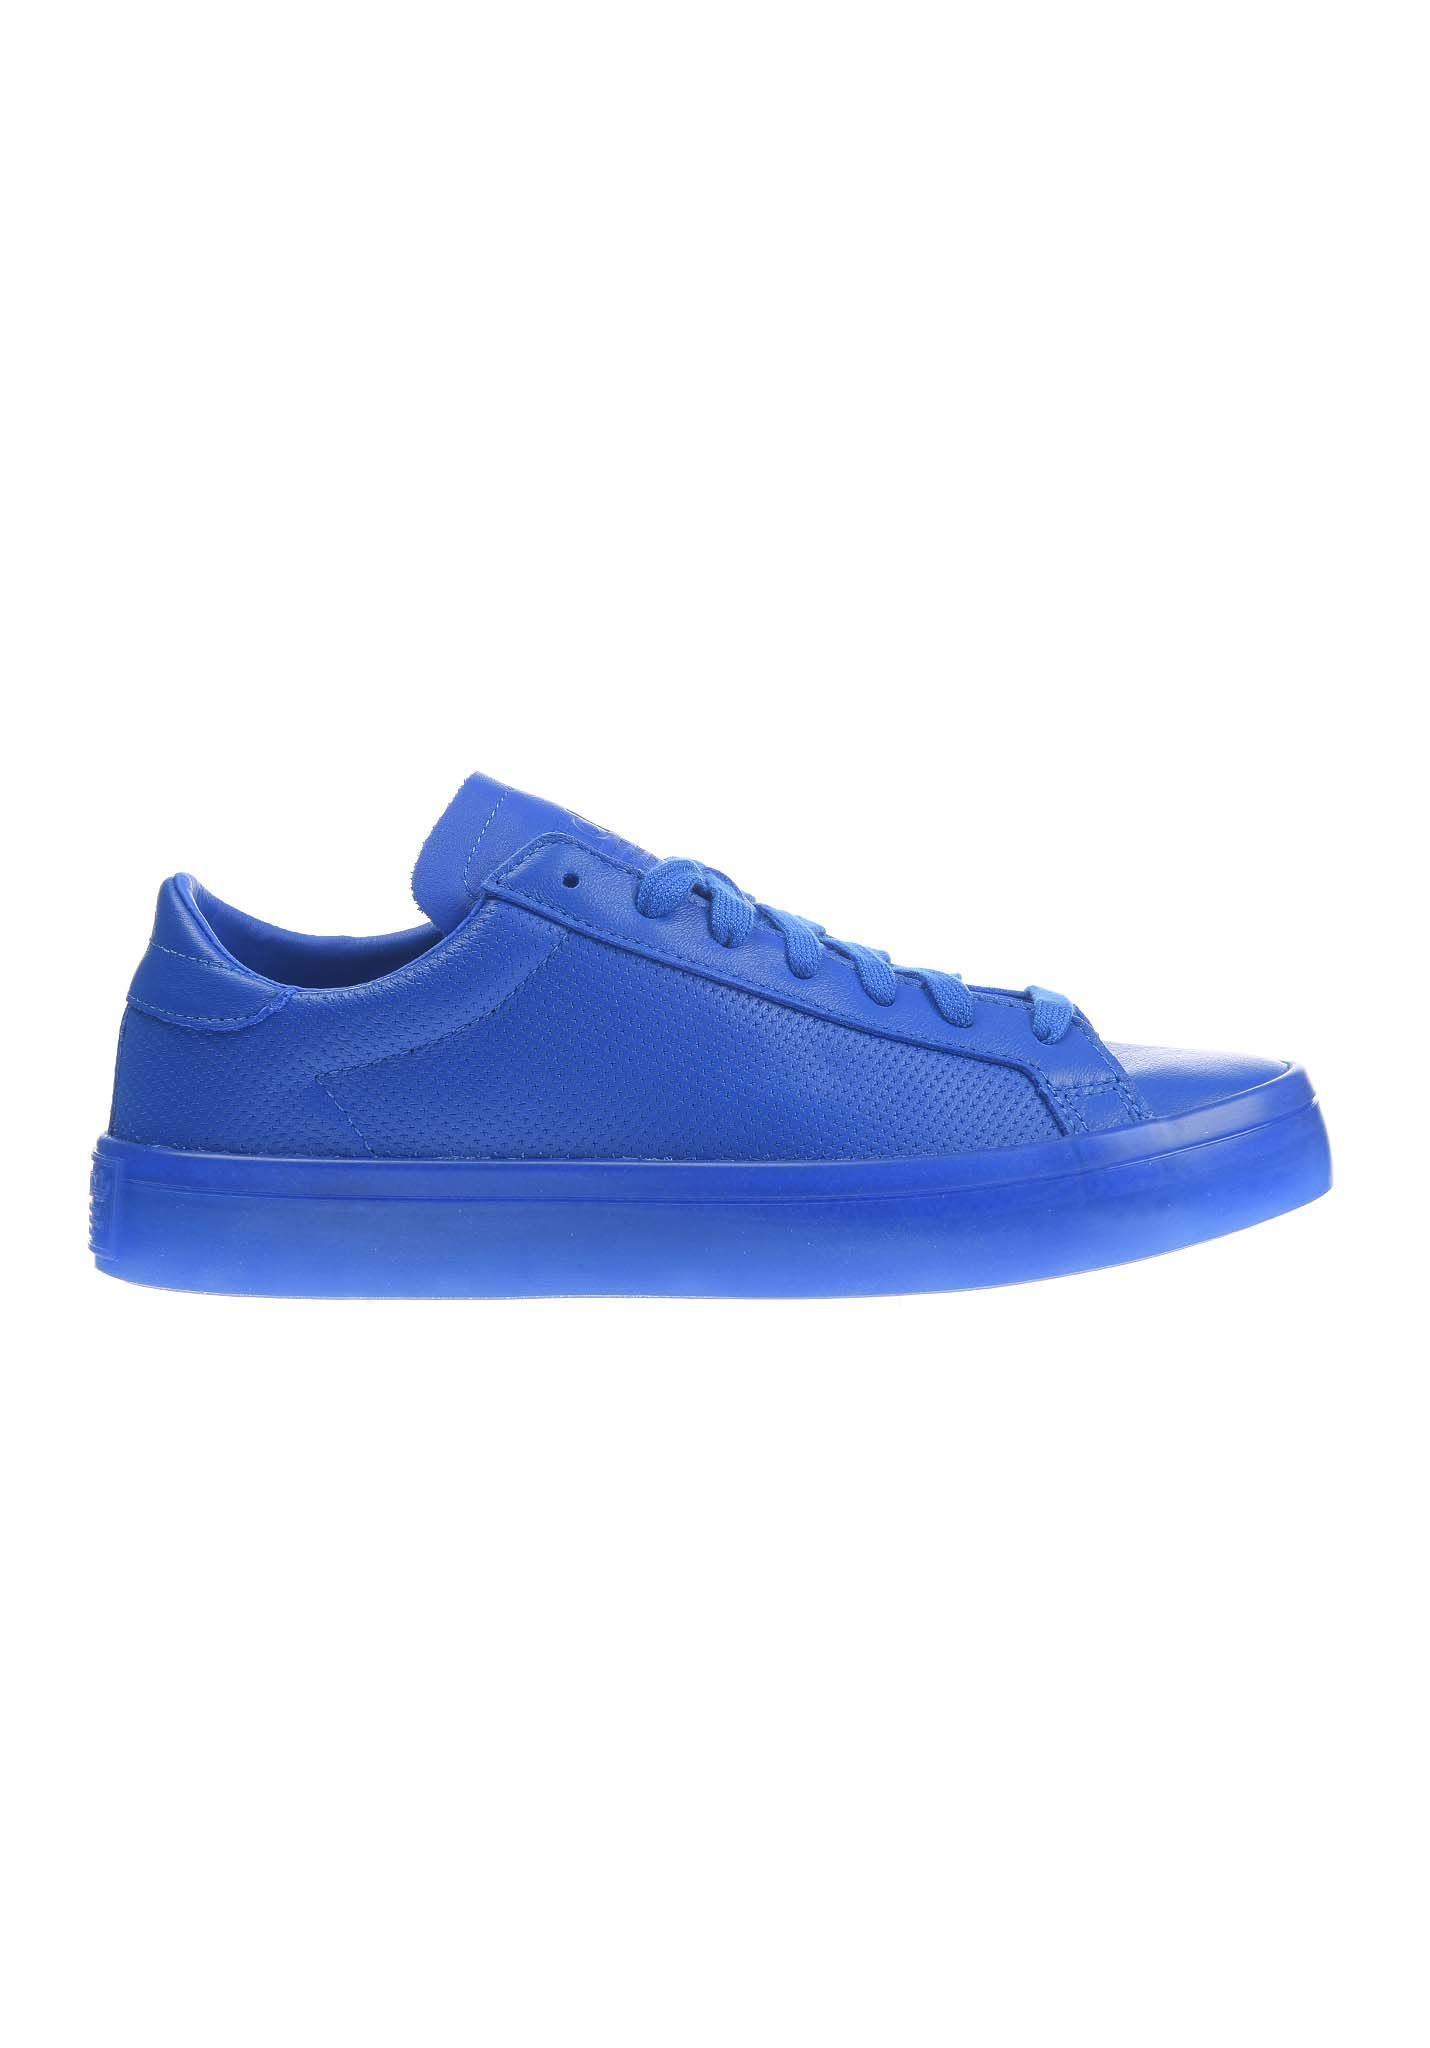 adidas court vantage donna bianche adidas court vantage adicolor sneaker  donne blu 129a2aa3678